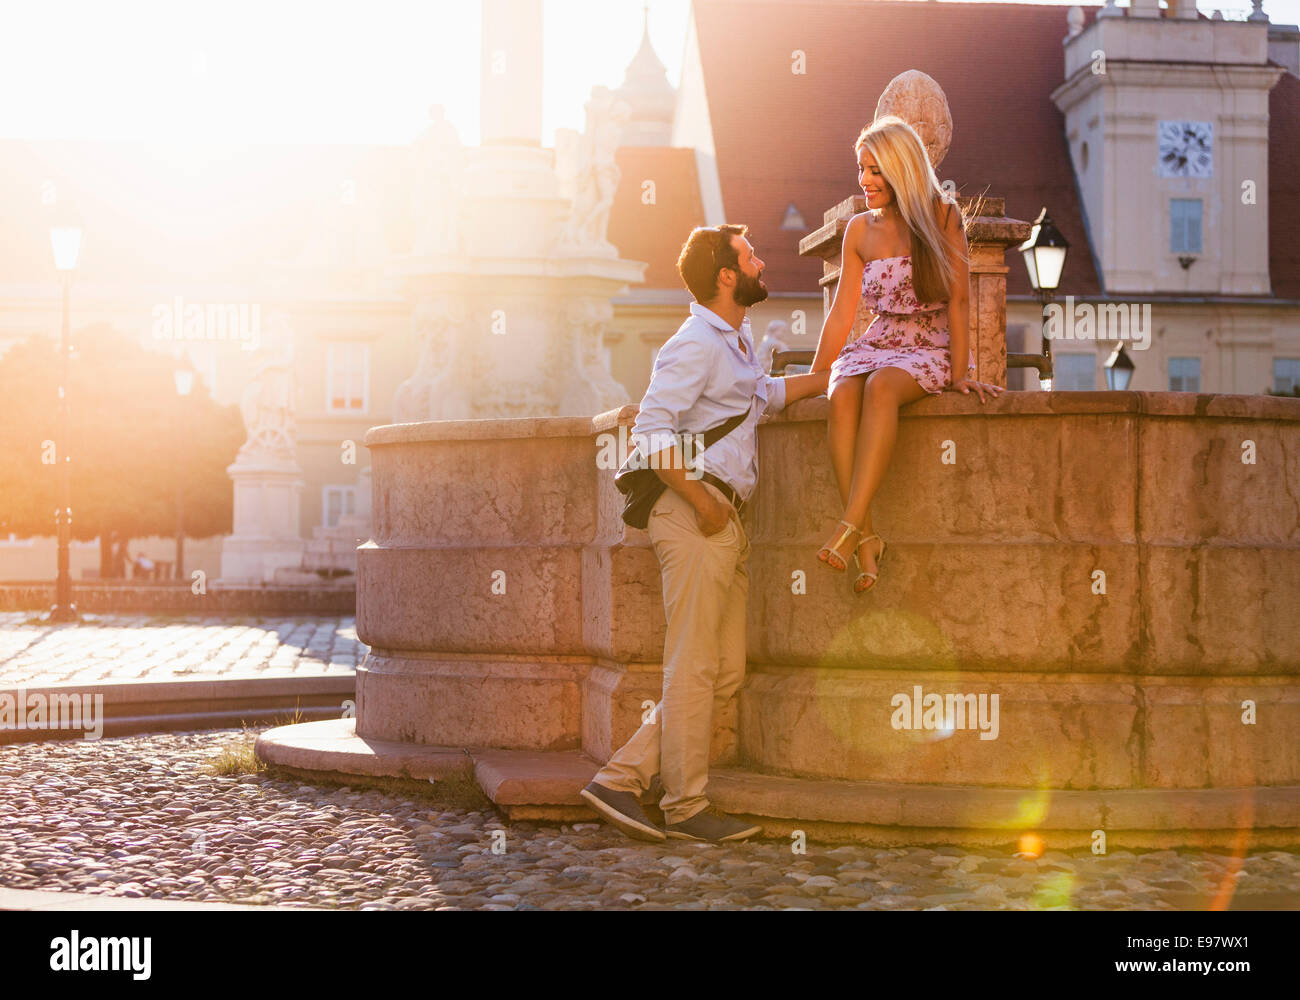 Jeune couple et le flirt par fontaine en ville Photo Stock